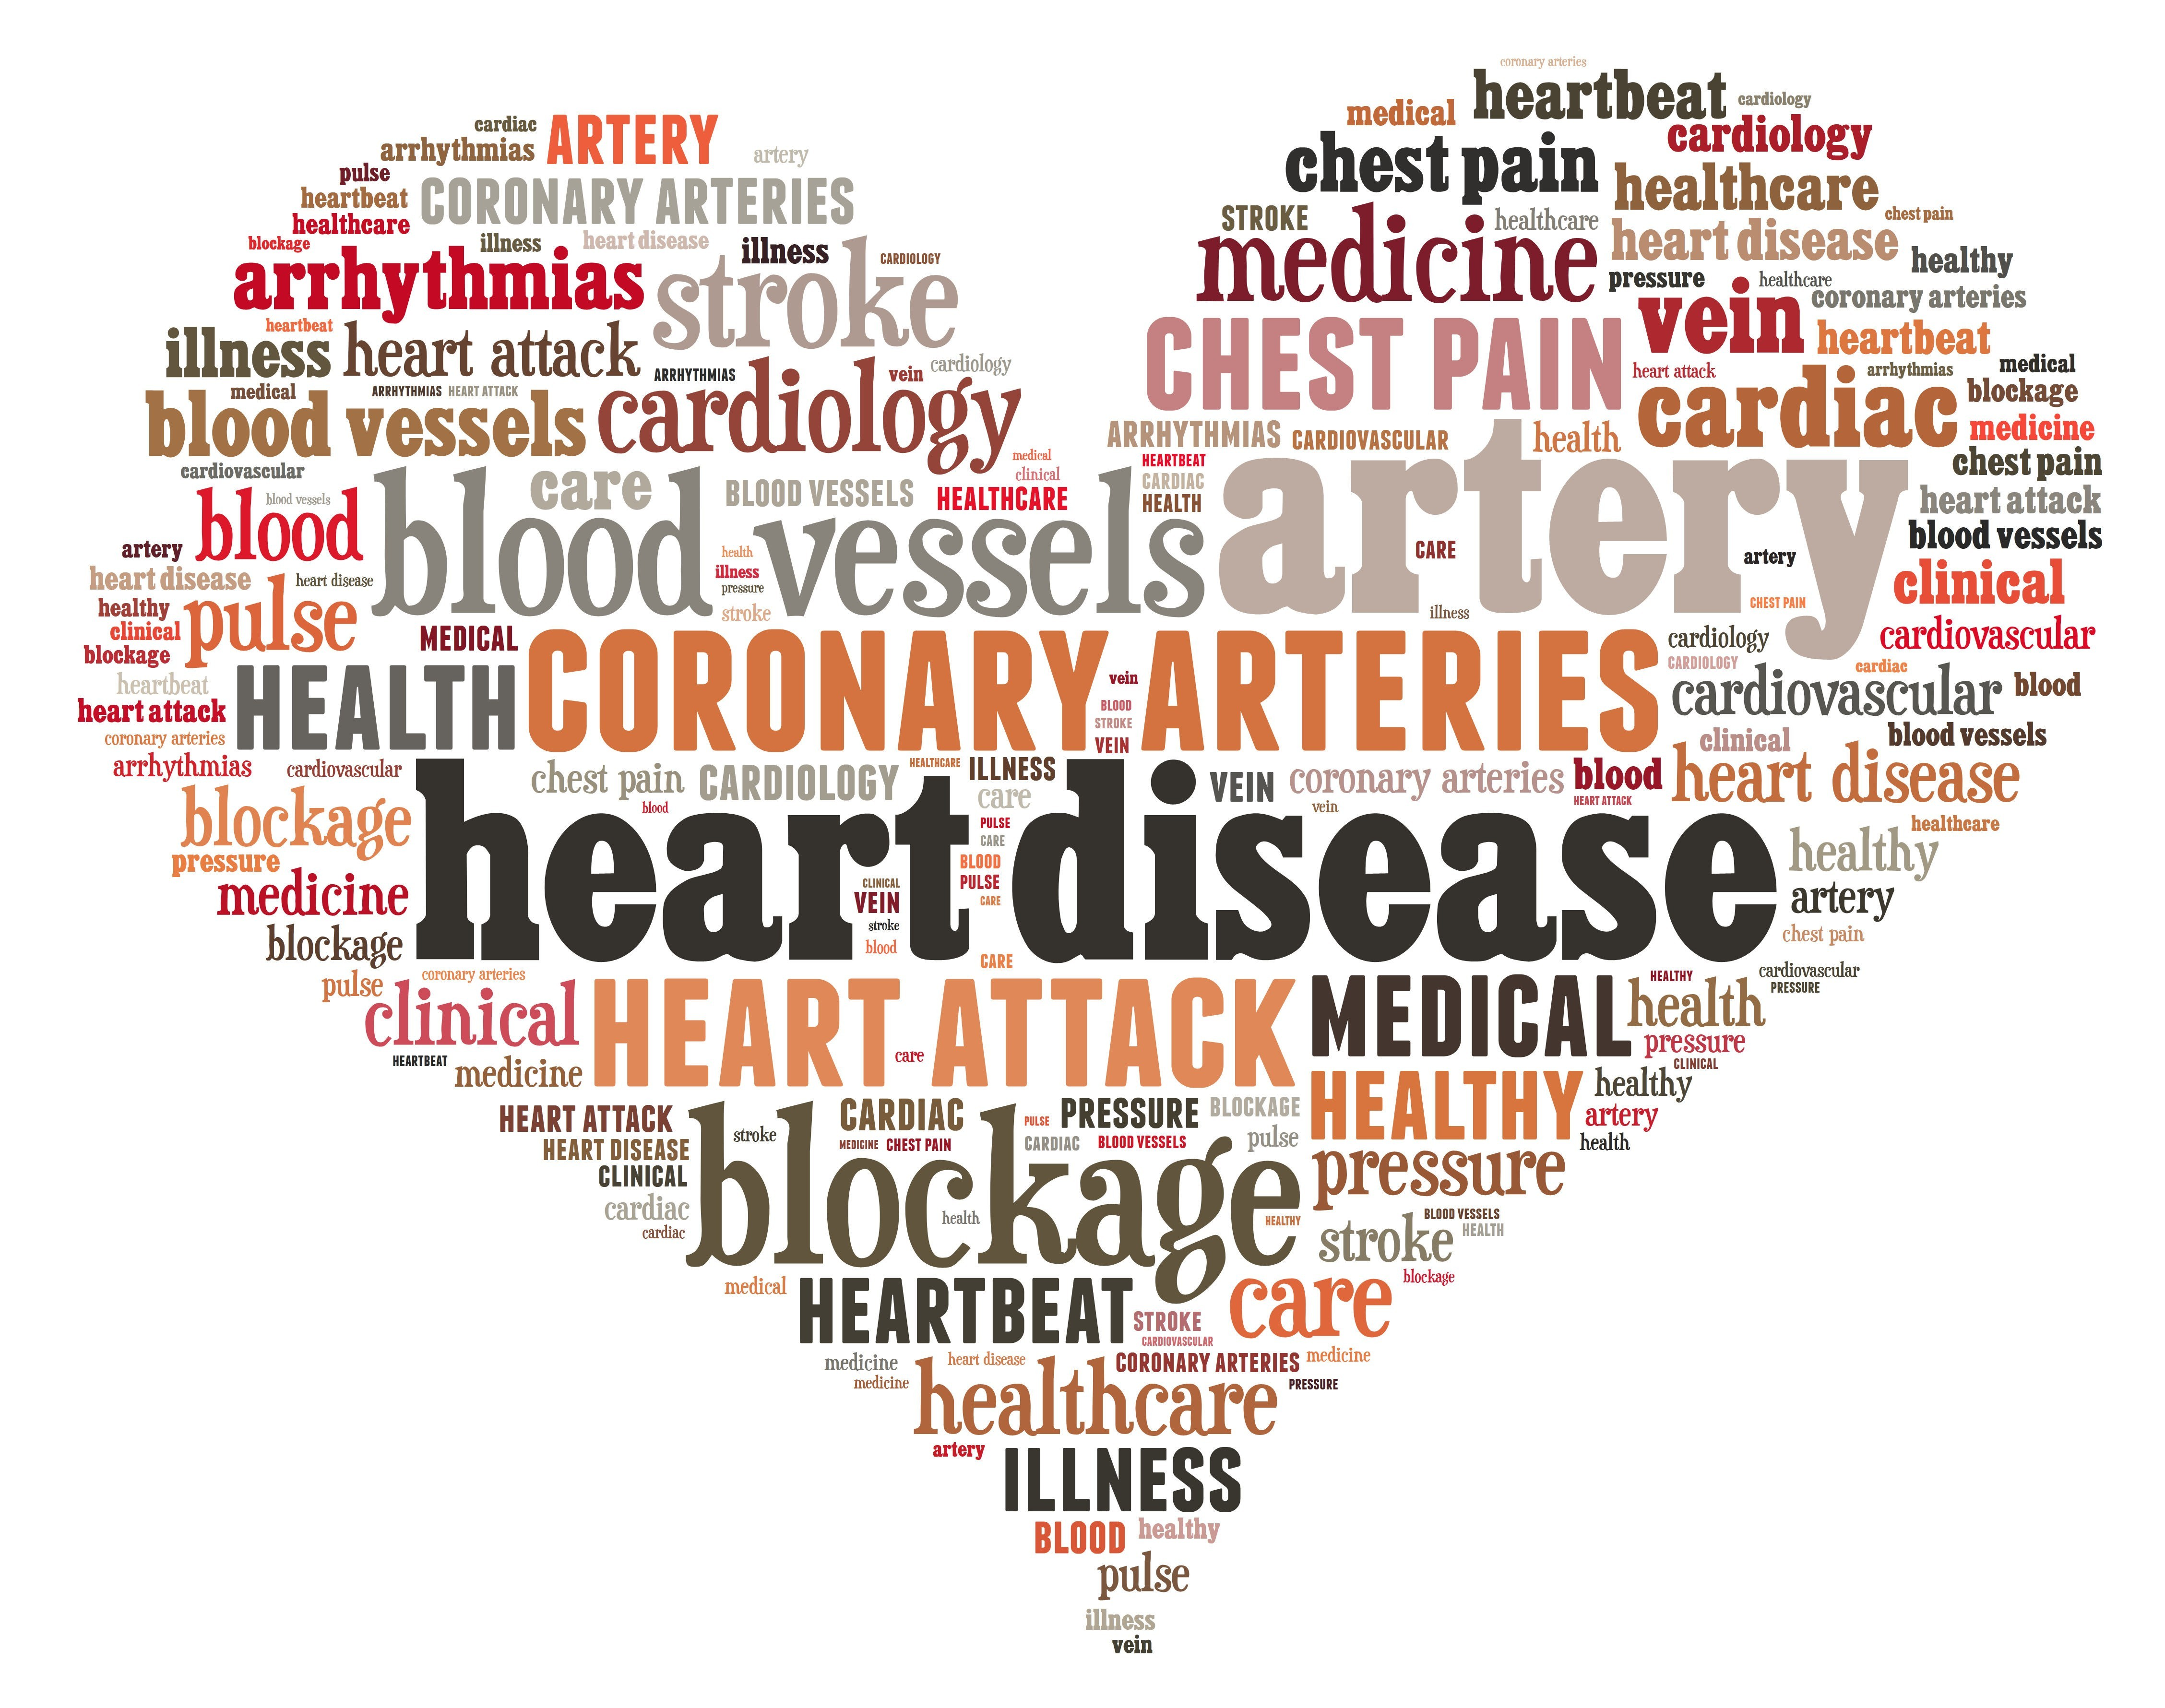 Mayo Clinic Q & A: Regardless of risk, take steps to protect heart health